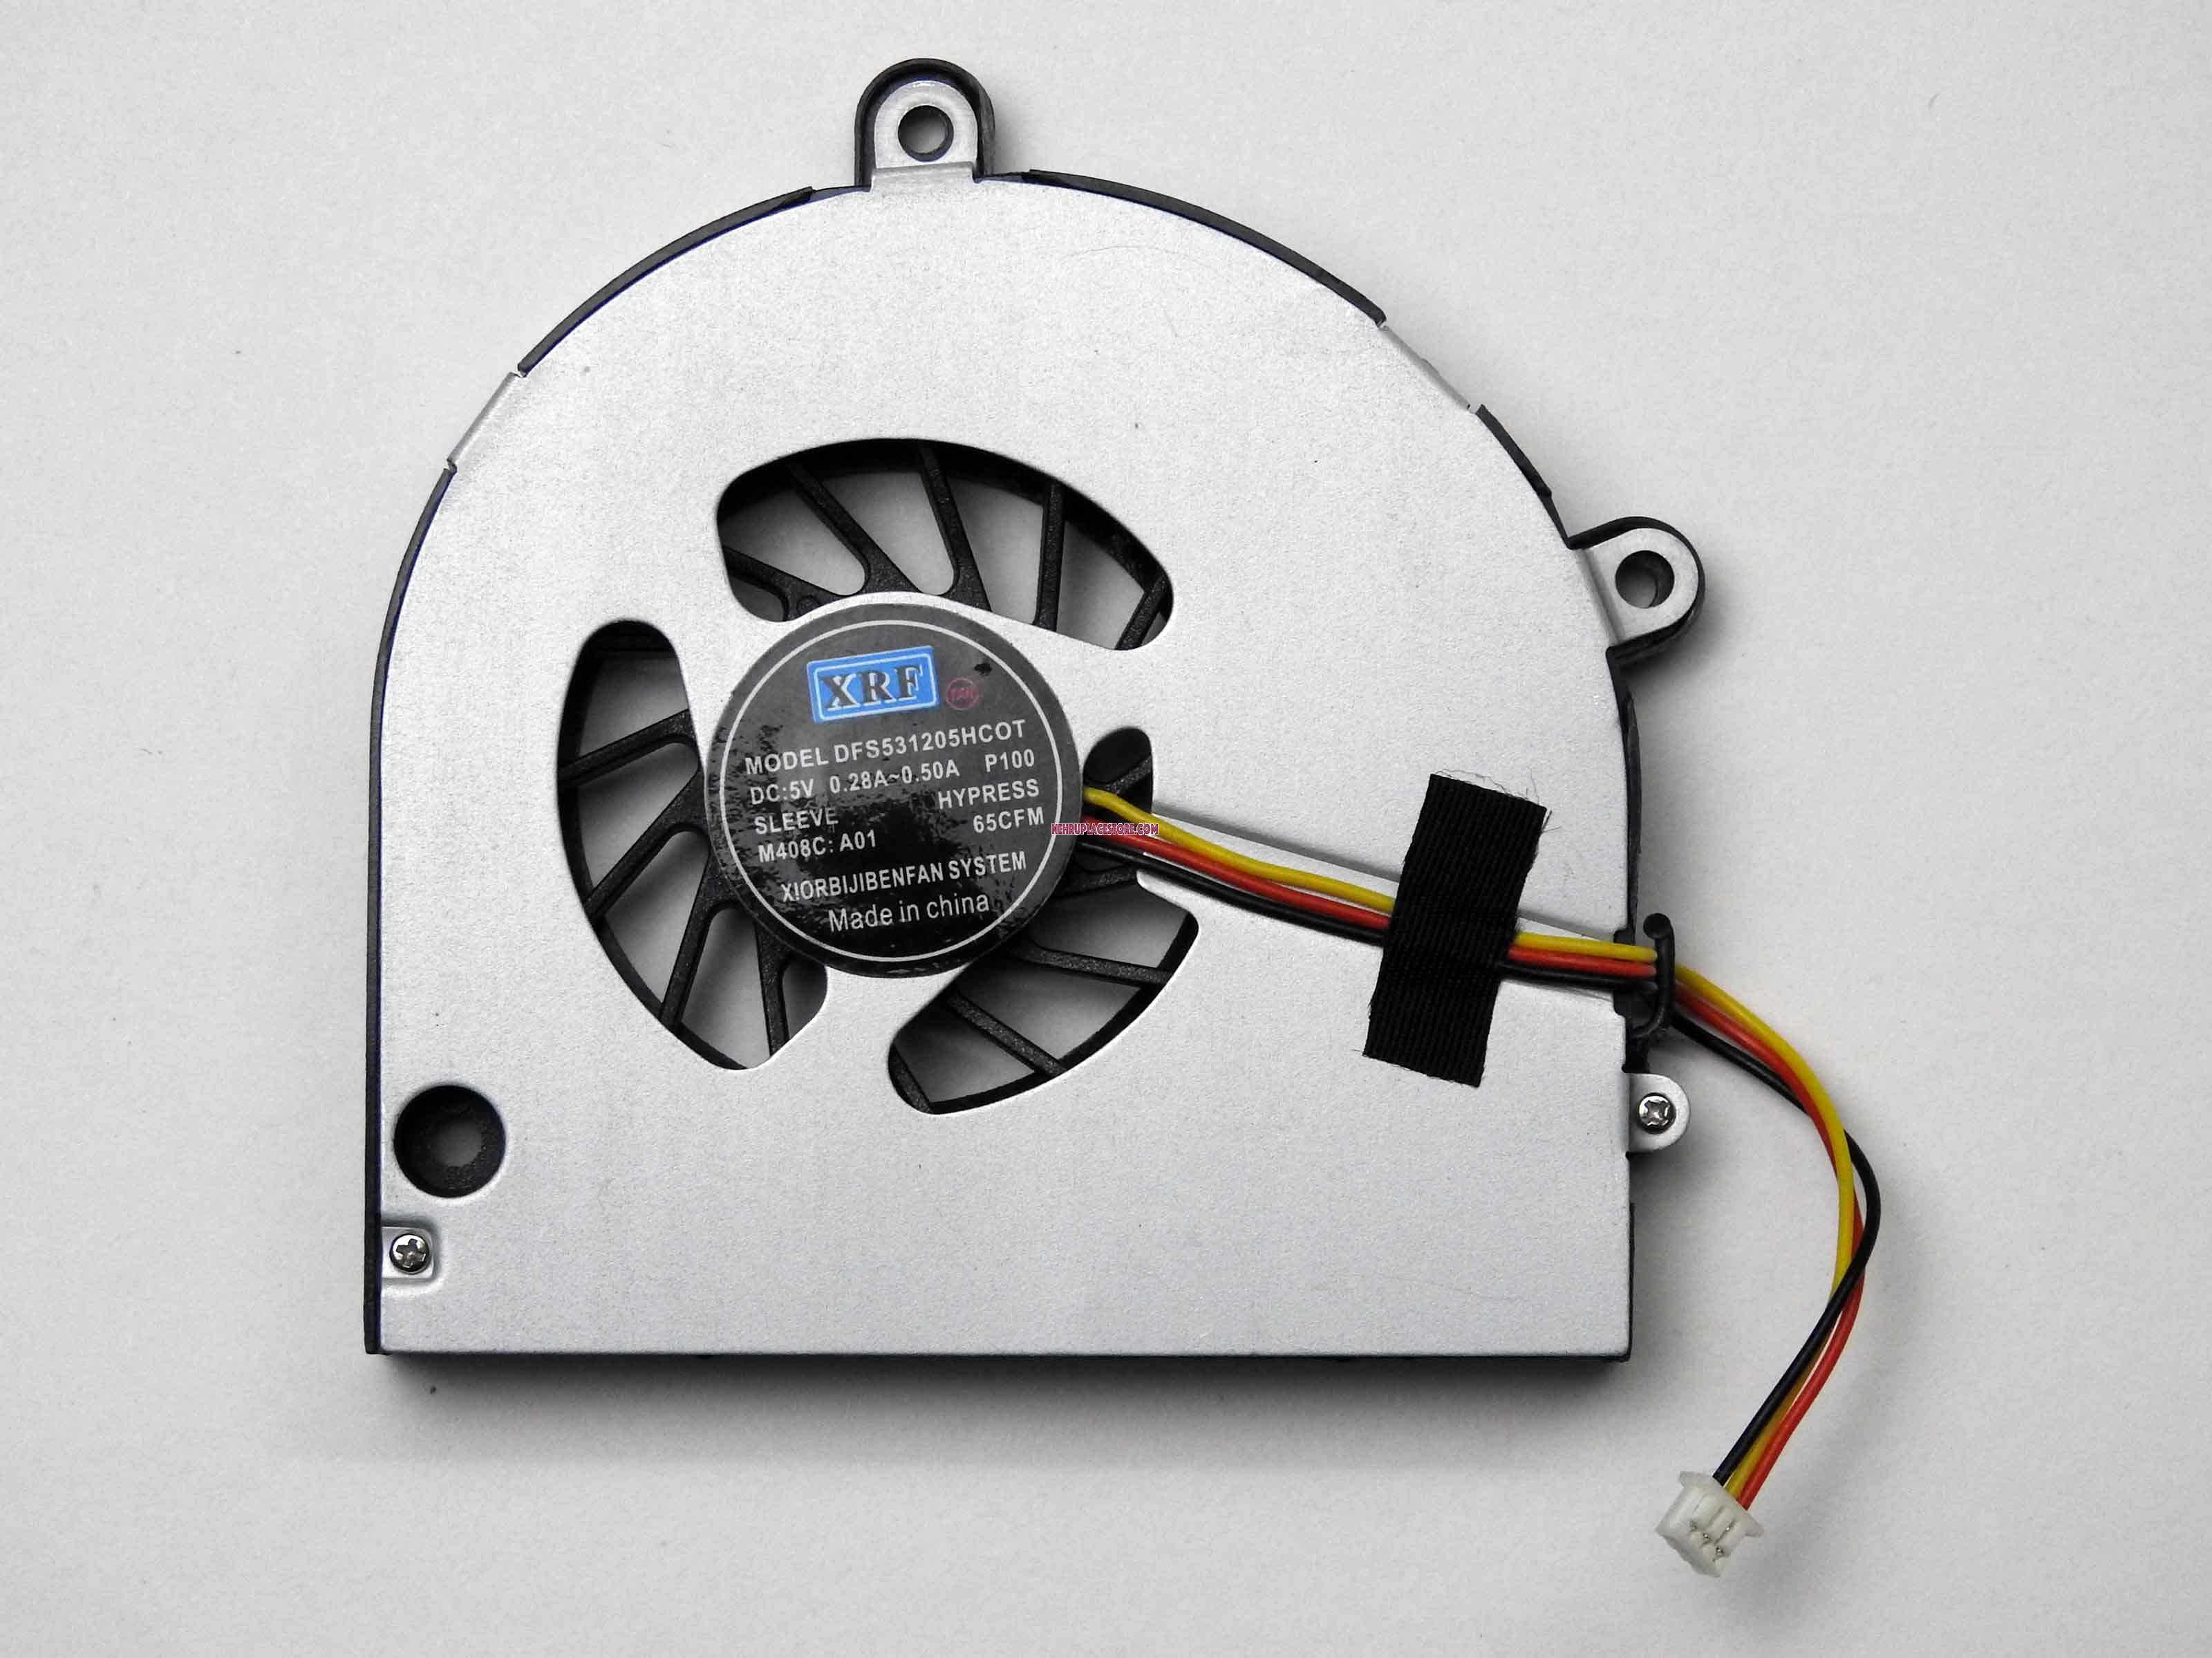 Fan For Toshiba Laptop Wiring Diagram Hdtv Direct Tv All Diagramfan